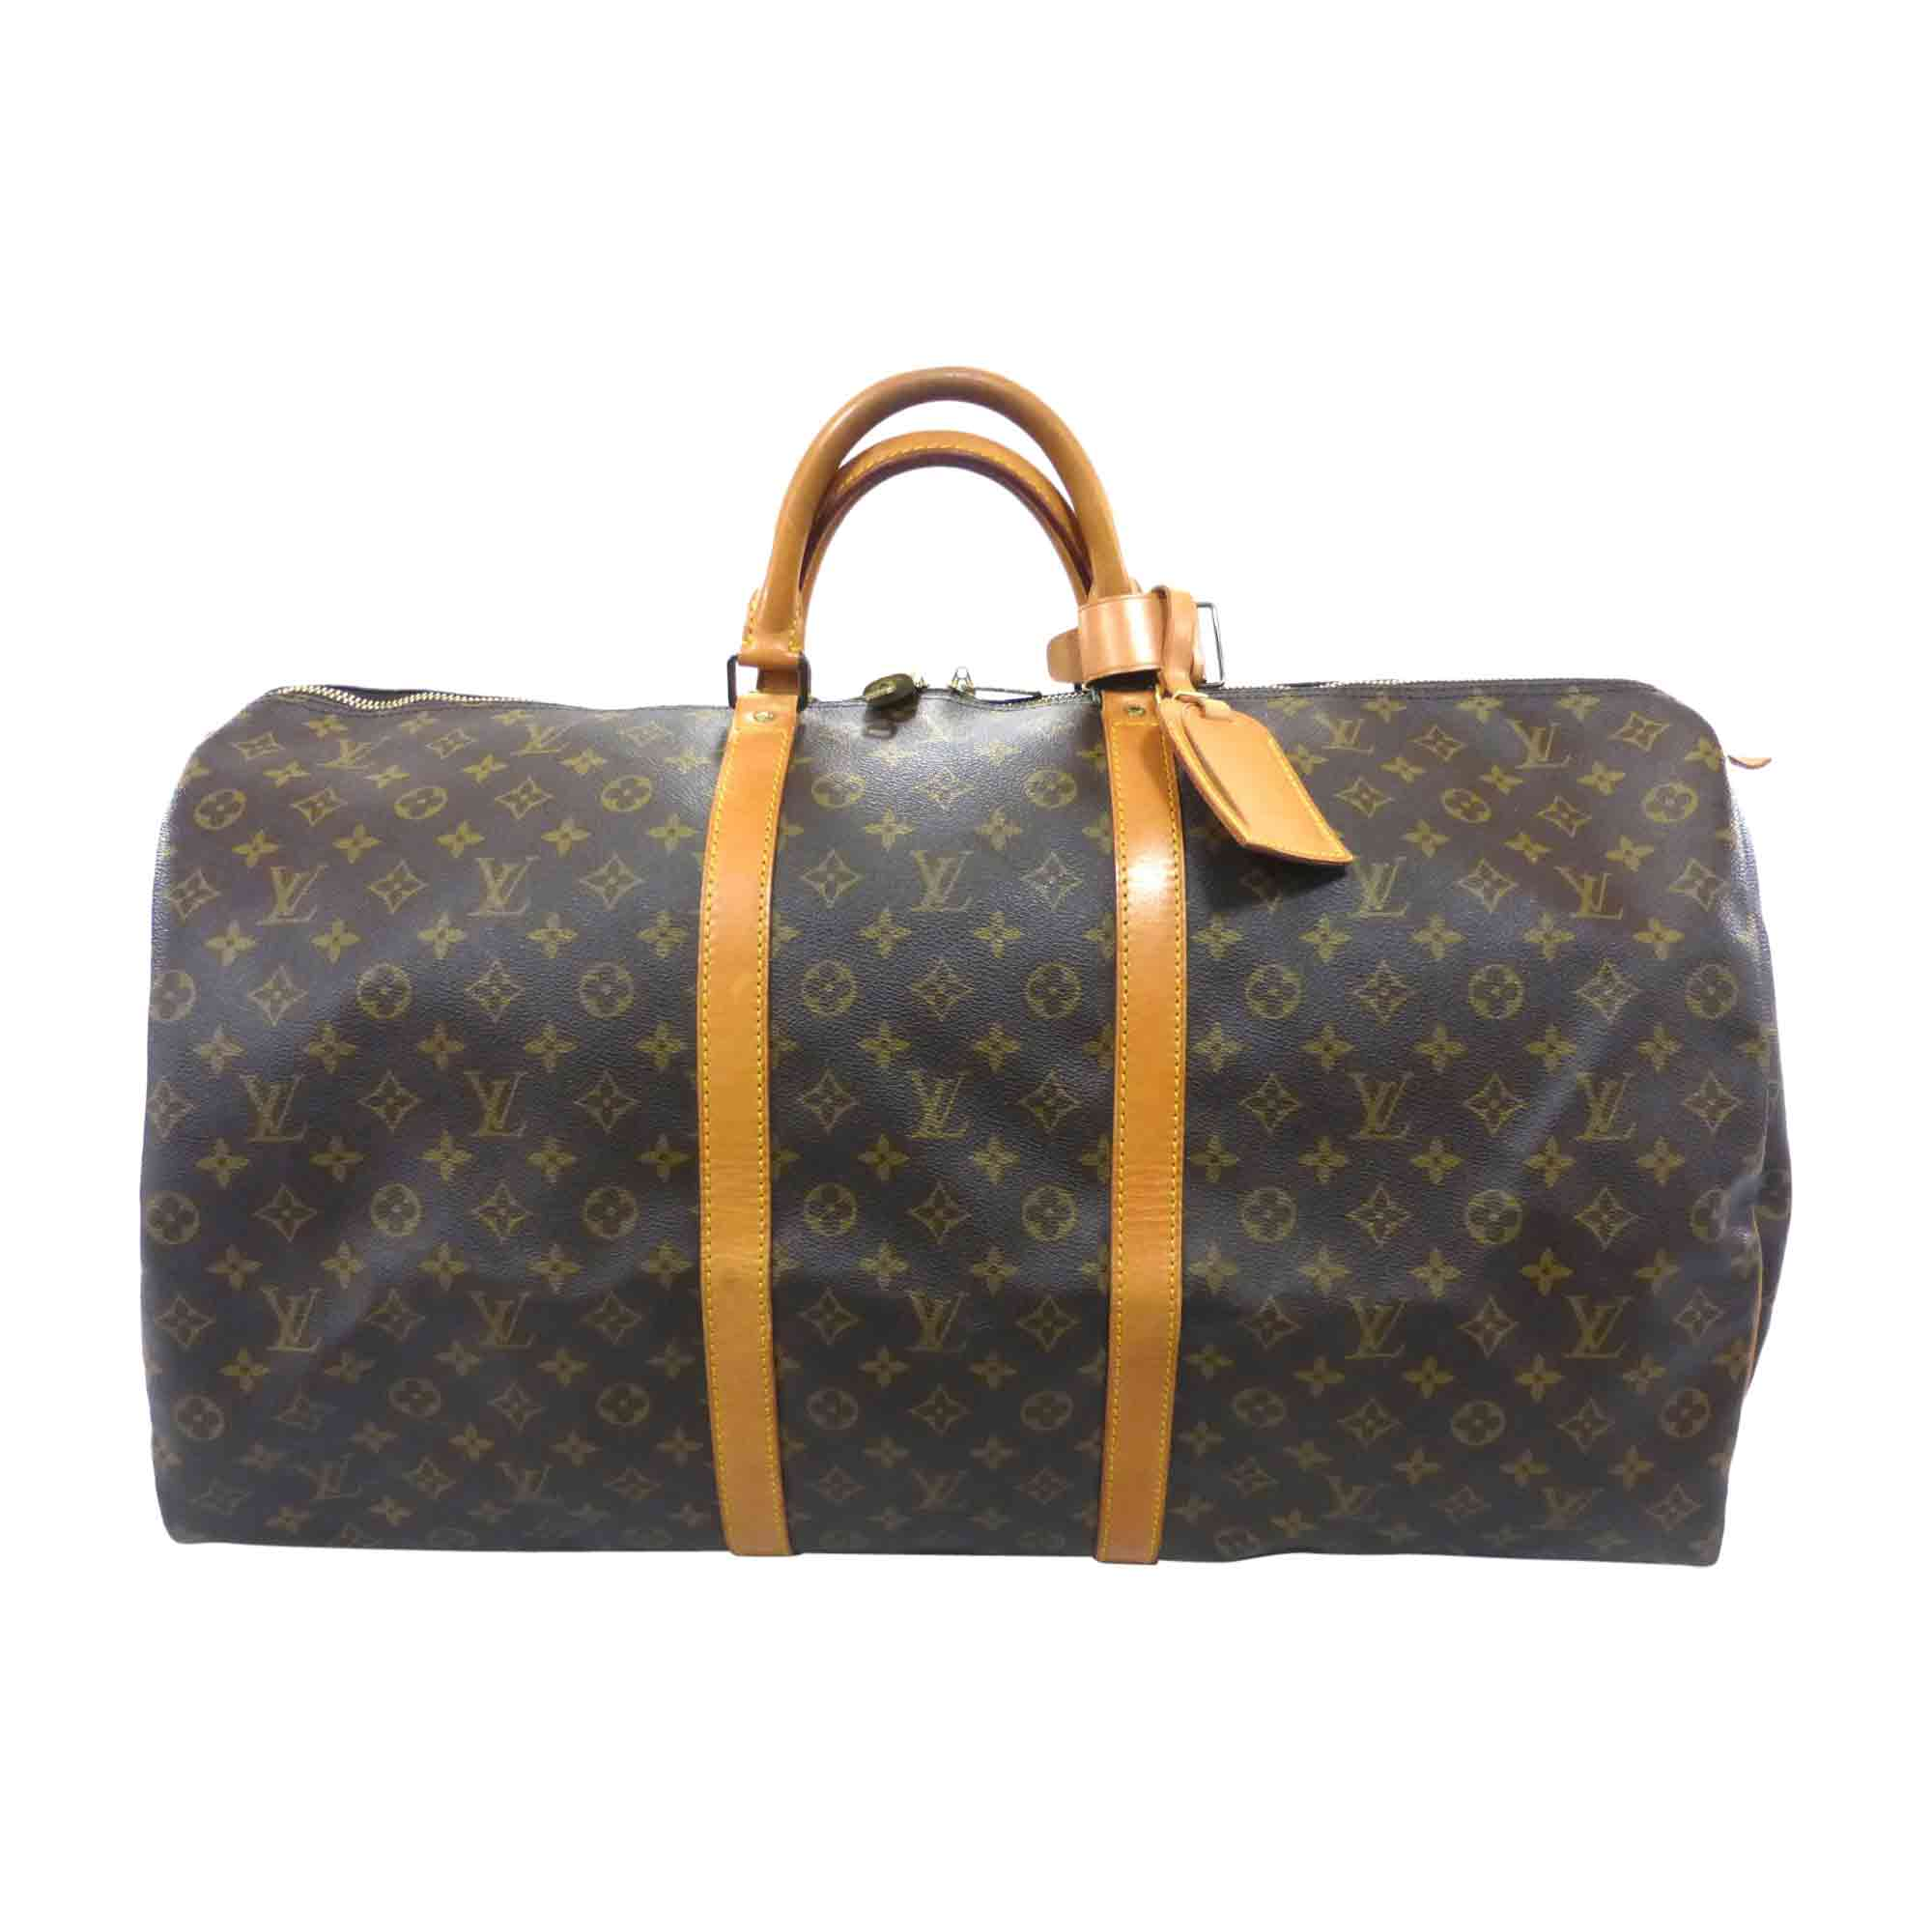 Ledertasche groß LOUIS VUITTON Keepall Braun